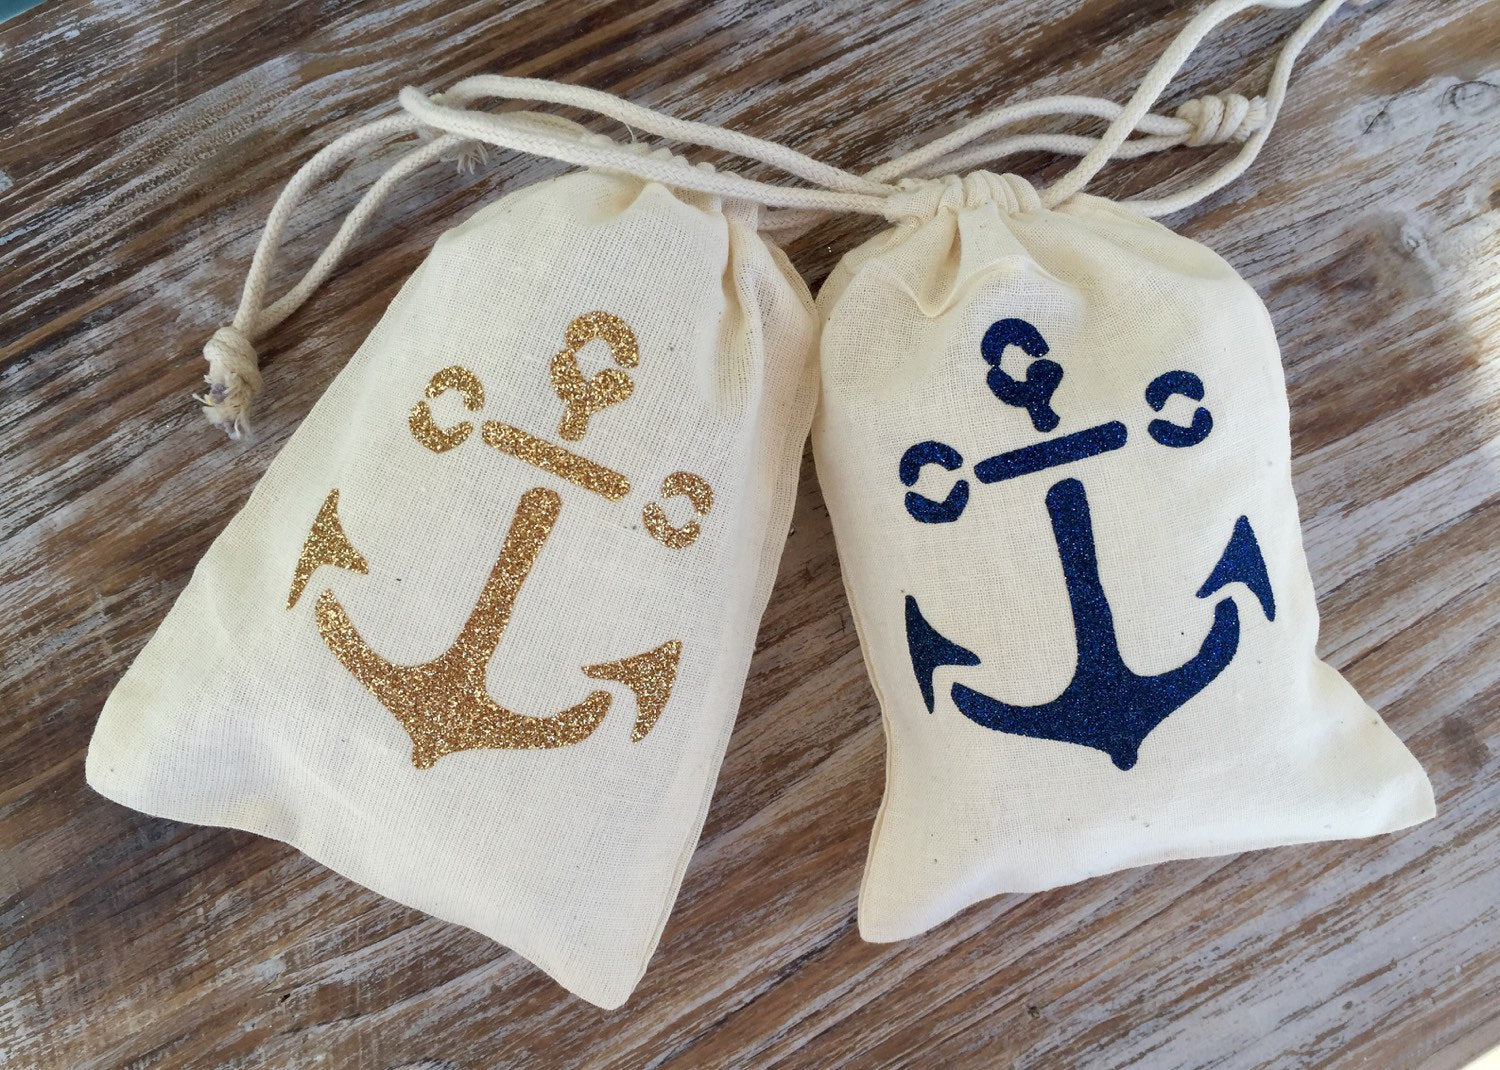 "10 gold glitter double drawstring anchor favor bags, 6"" by 8"" gold anchor bags, gold glitter anchor drawstring bags, gold nautical wedding f"